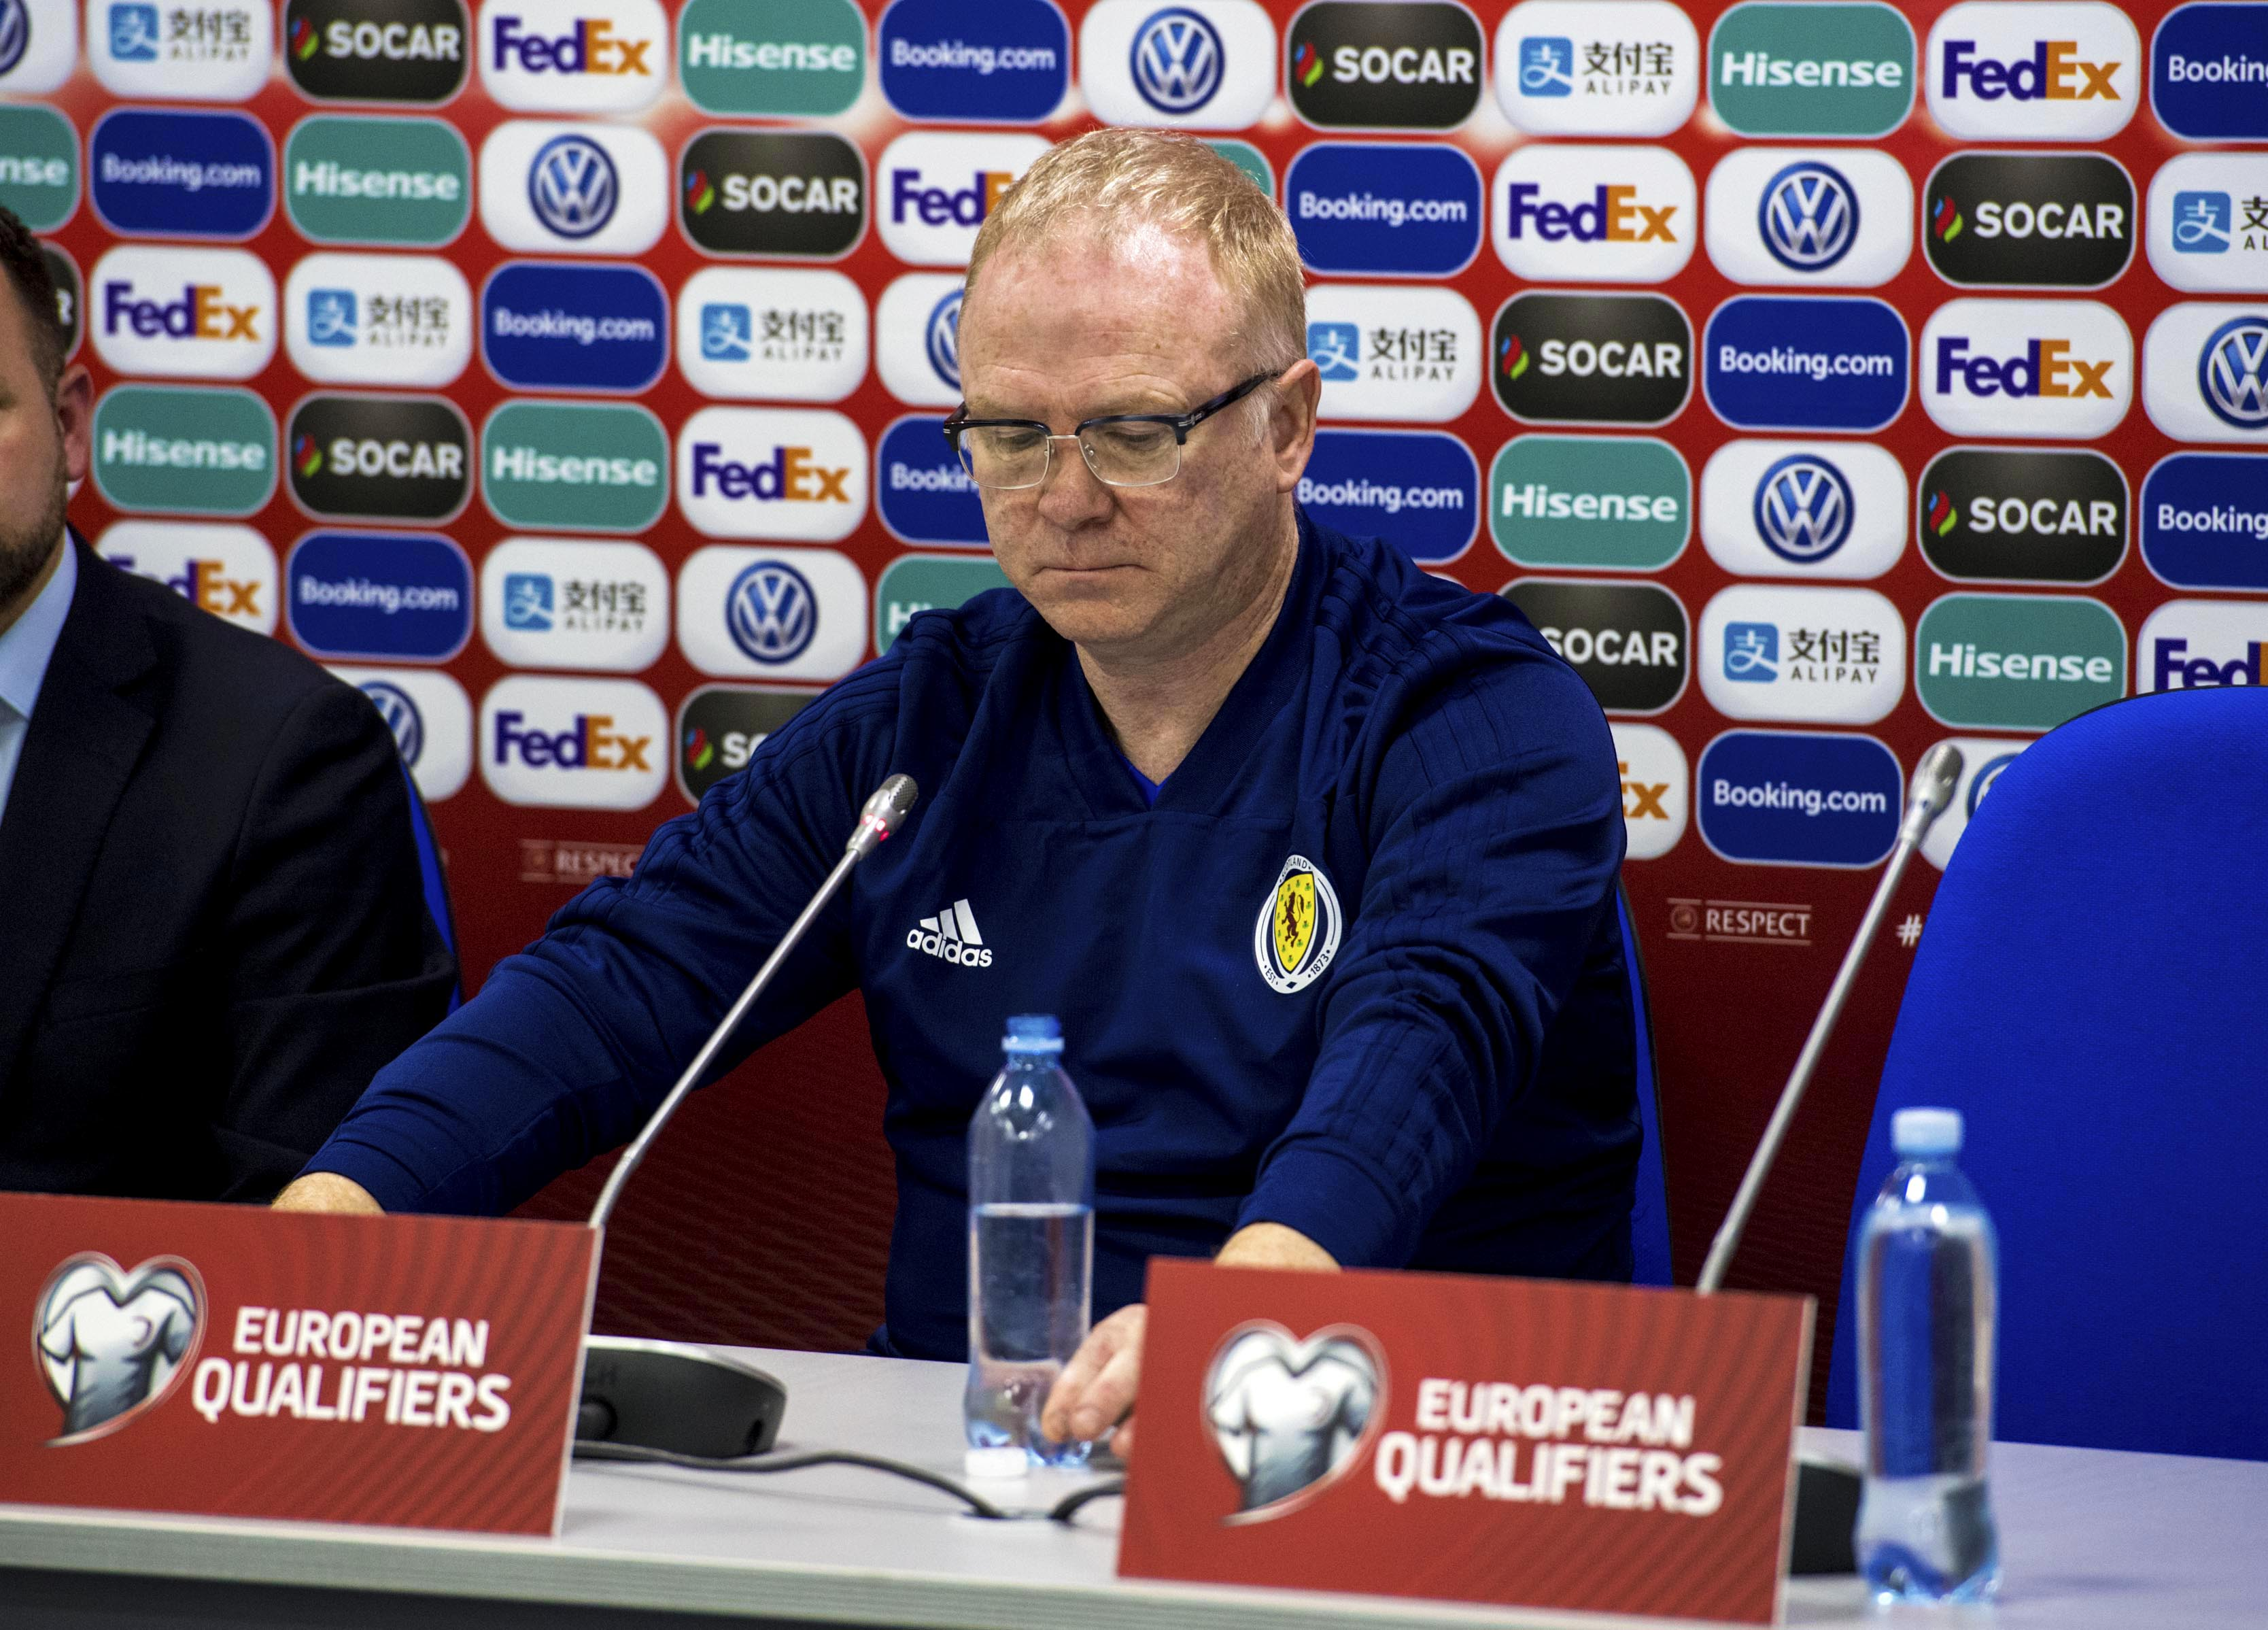 Scotland manager Alex McLeish looks dejected at his post-match press conference.